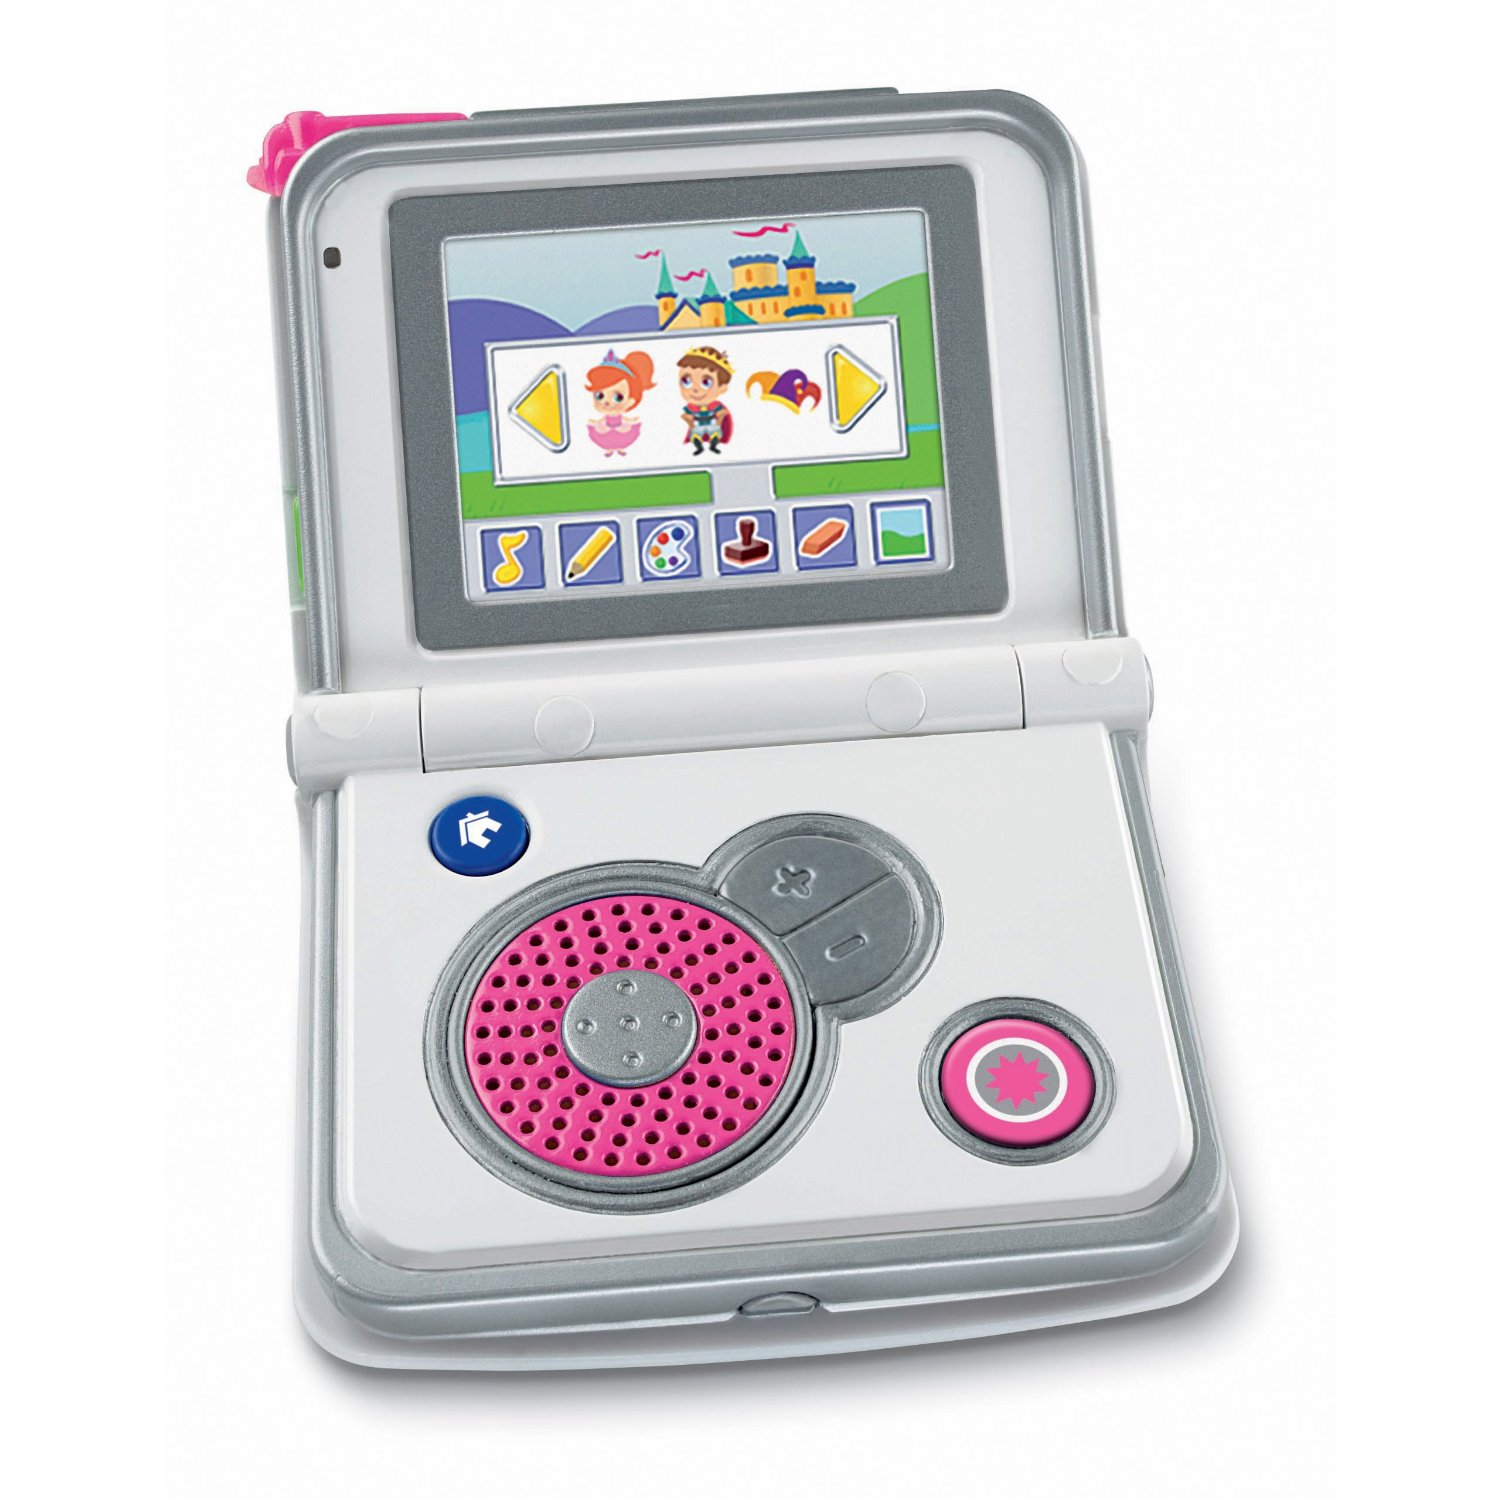 Fisher-Price iXL 6-in-1 Learning System